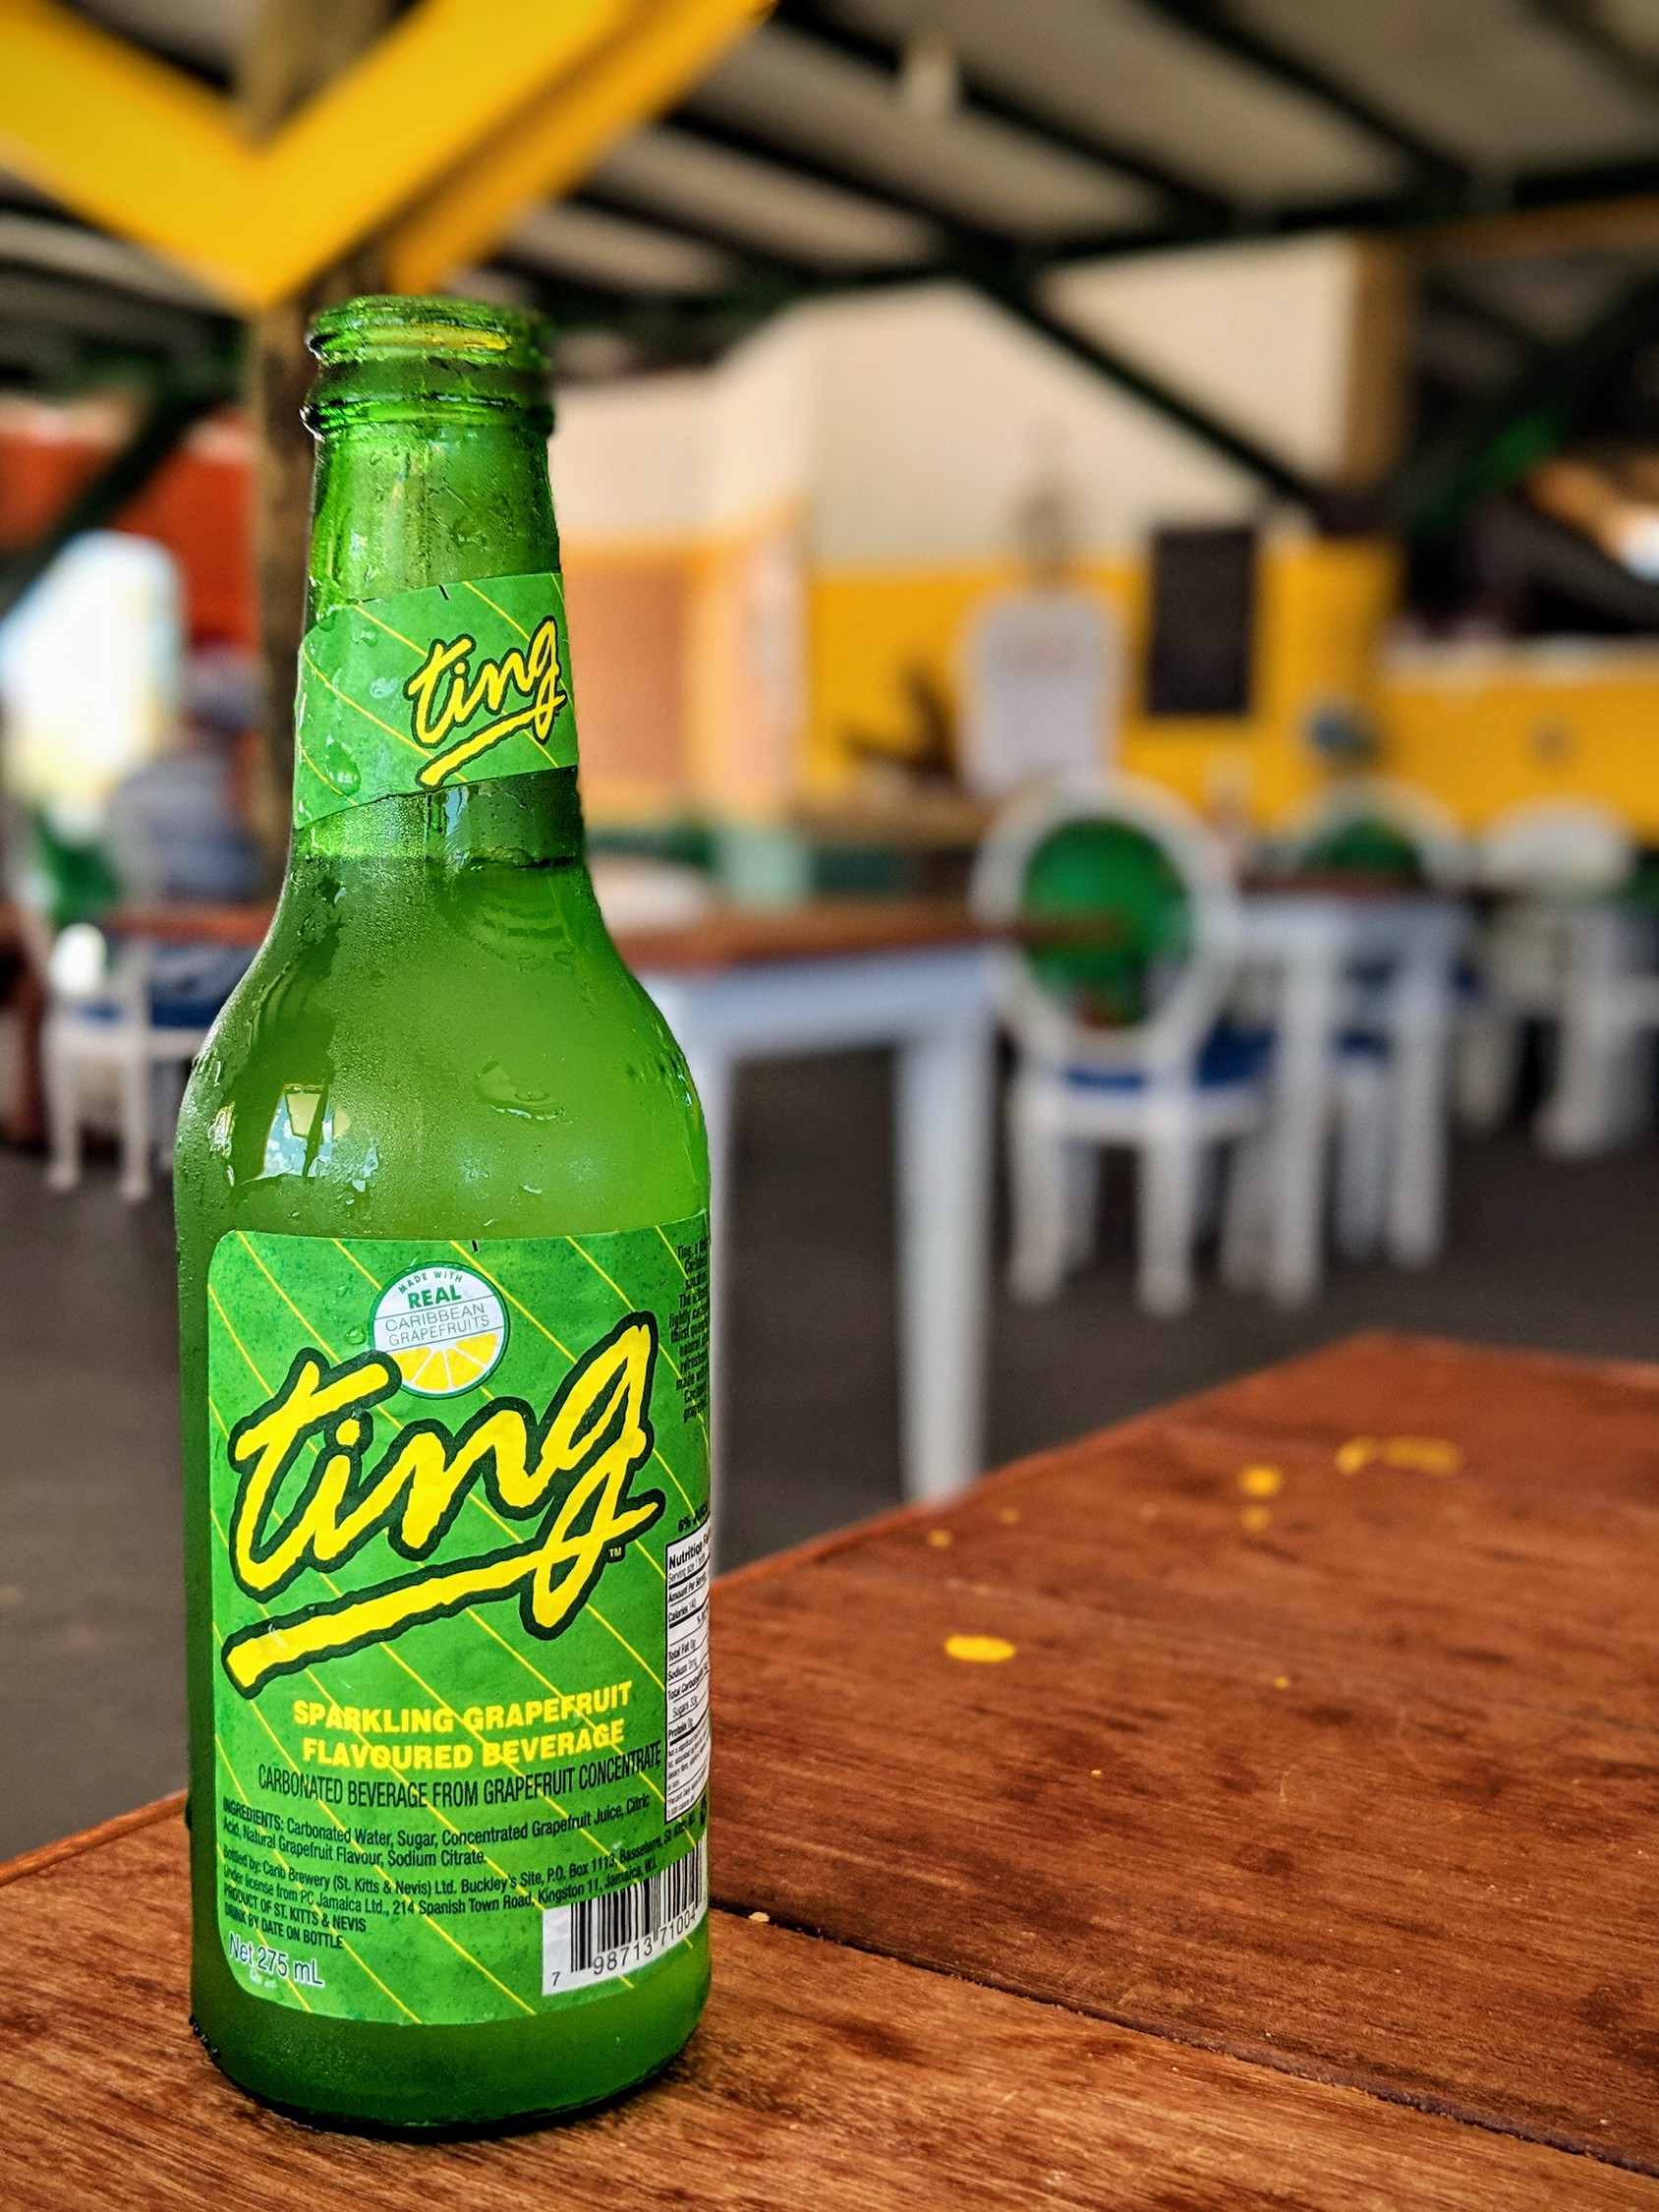 Ting grapefruit soda, a popular drink in Jamaica, on a table in a restaurant.